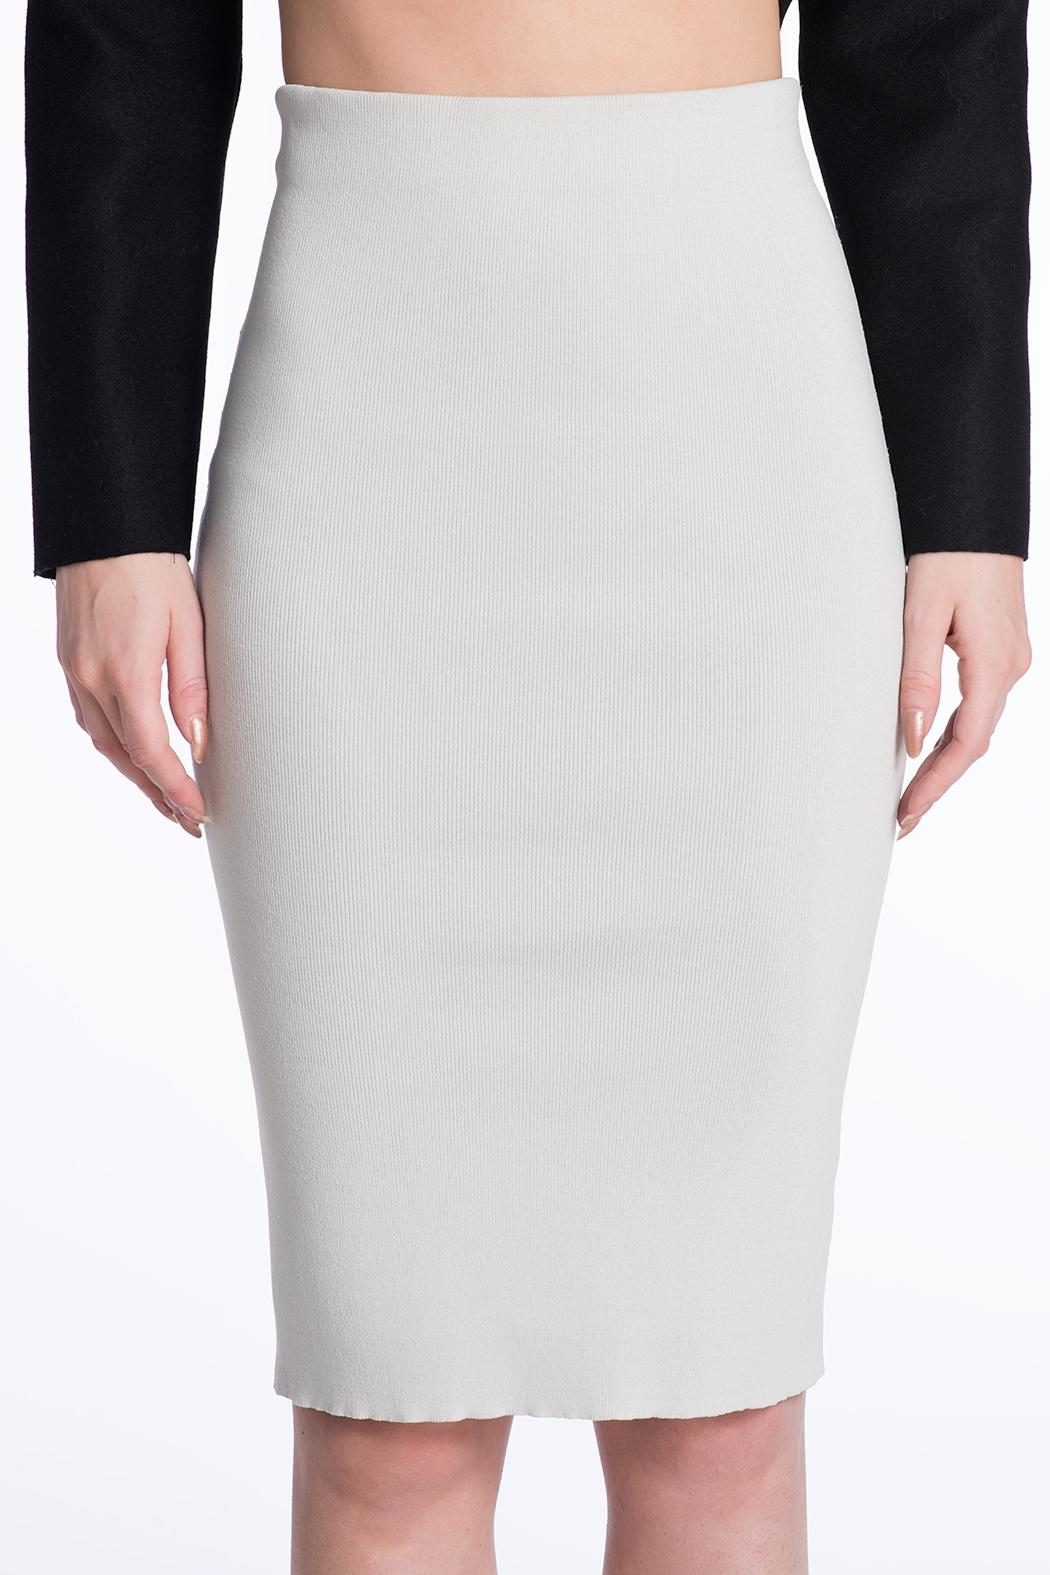 Charlie May Knit Pencil Skirt - Front Cropped Image